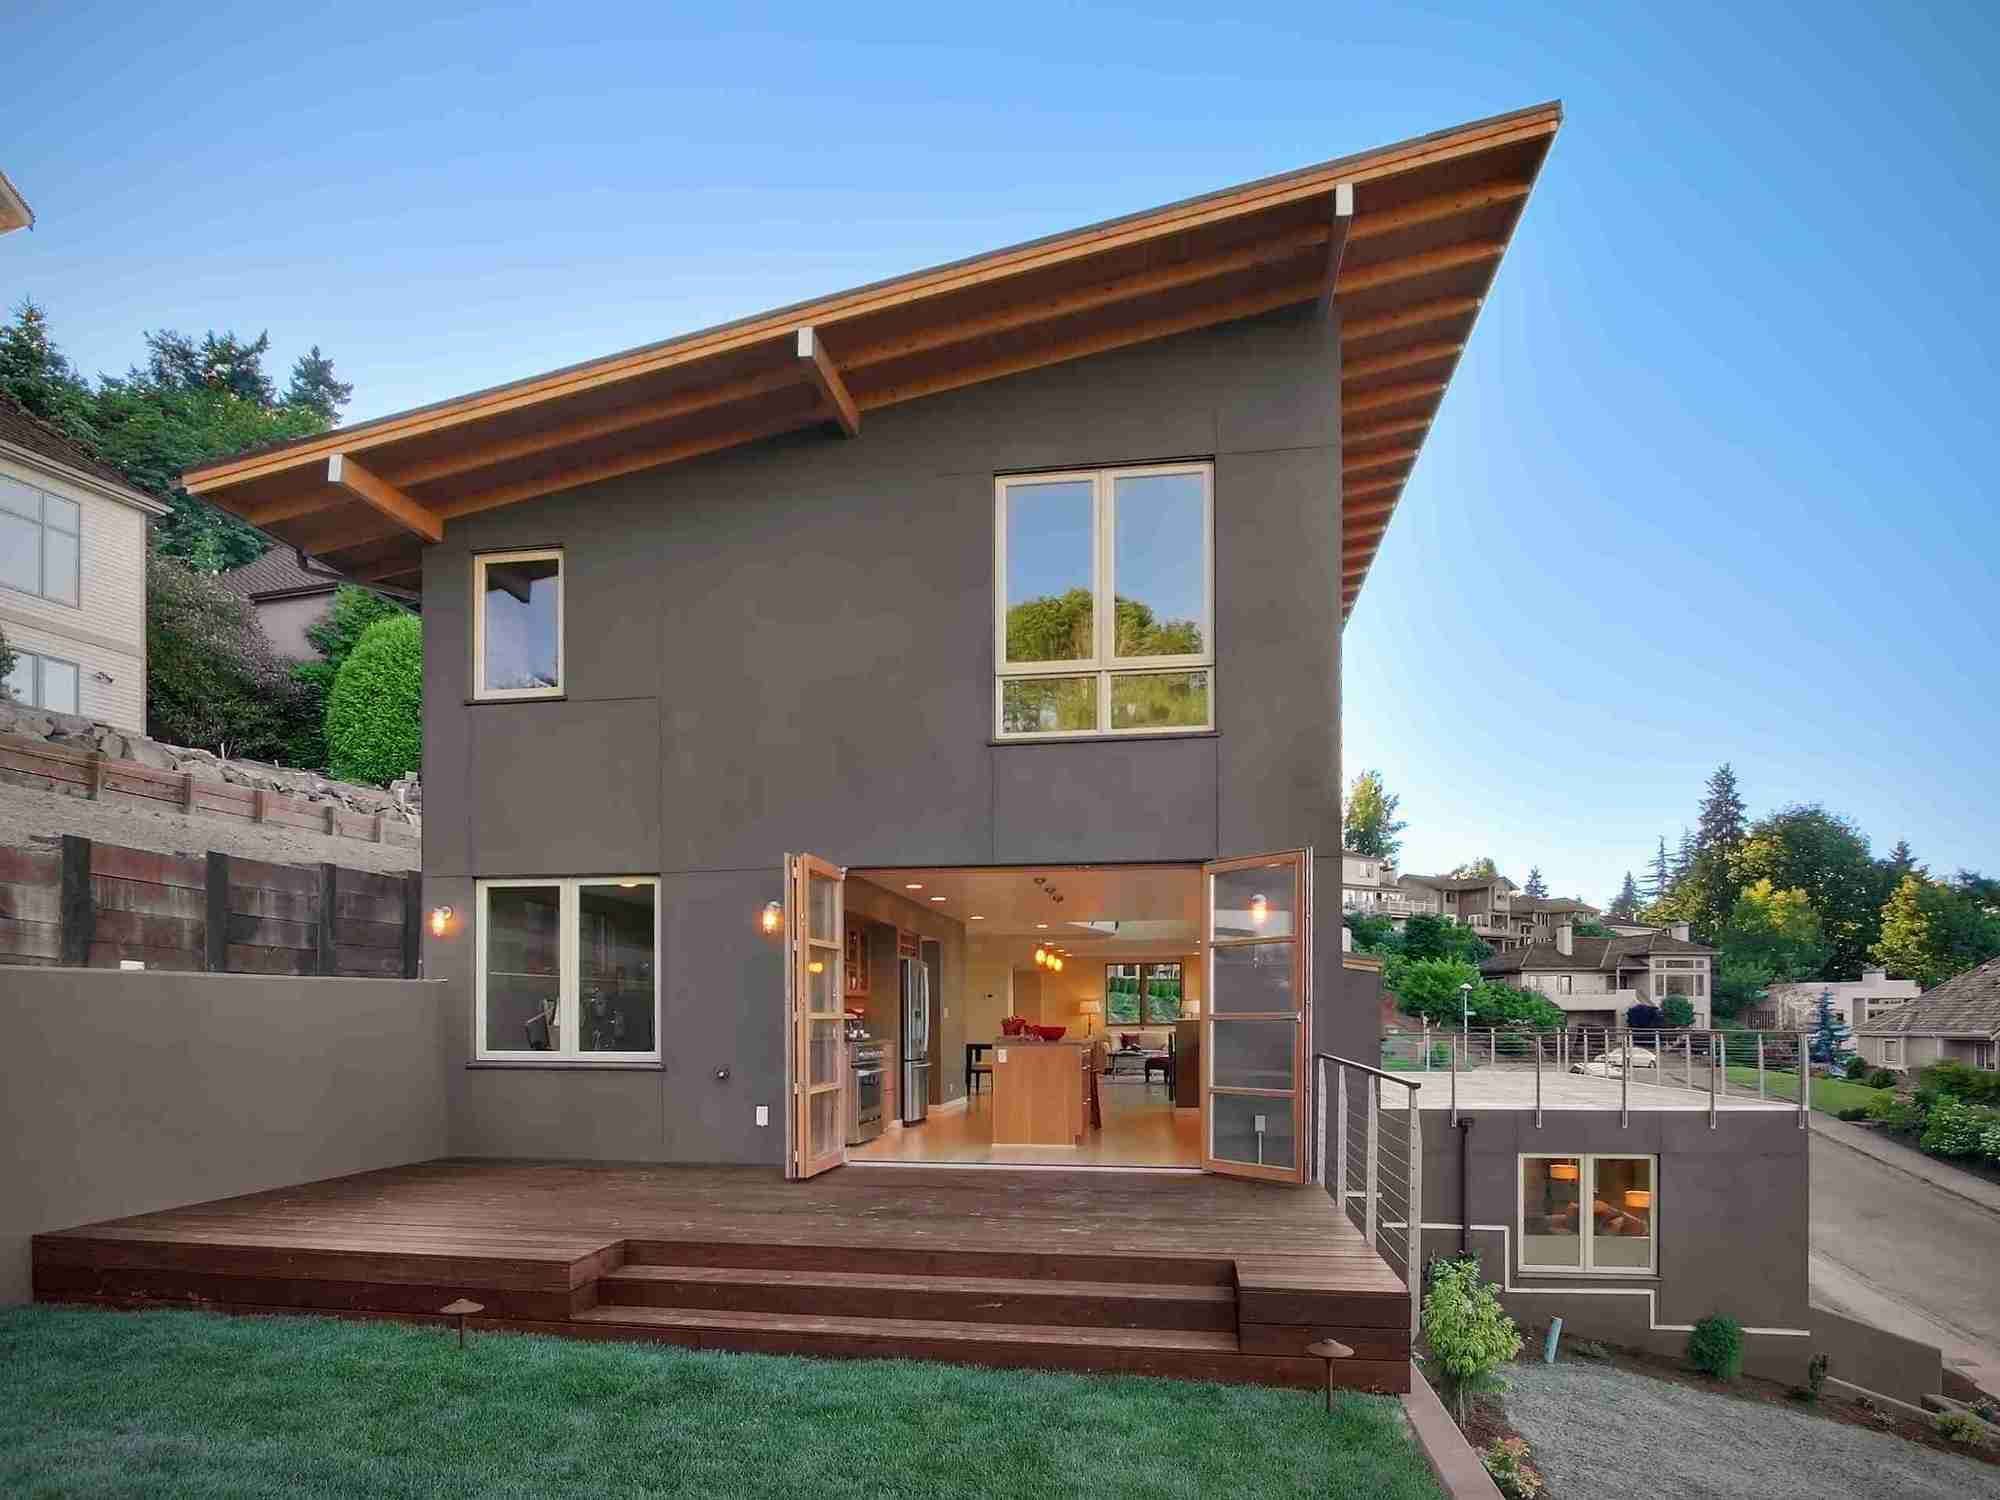 Modern Home Exterior Wood cozy minimalist modern house wood exterior full imagas quirky